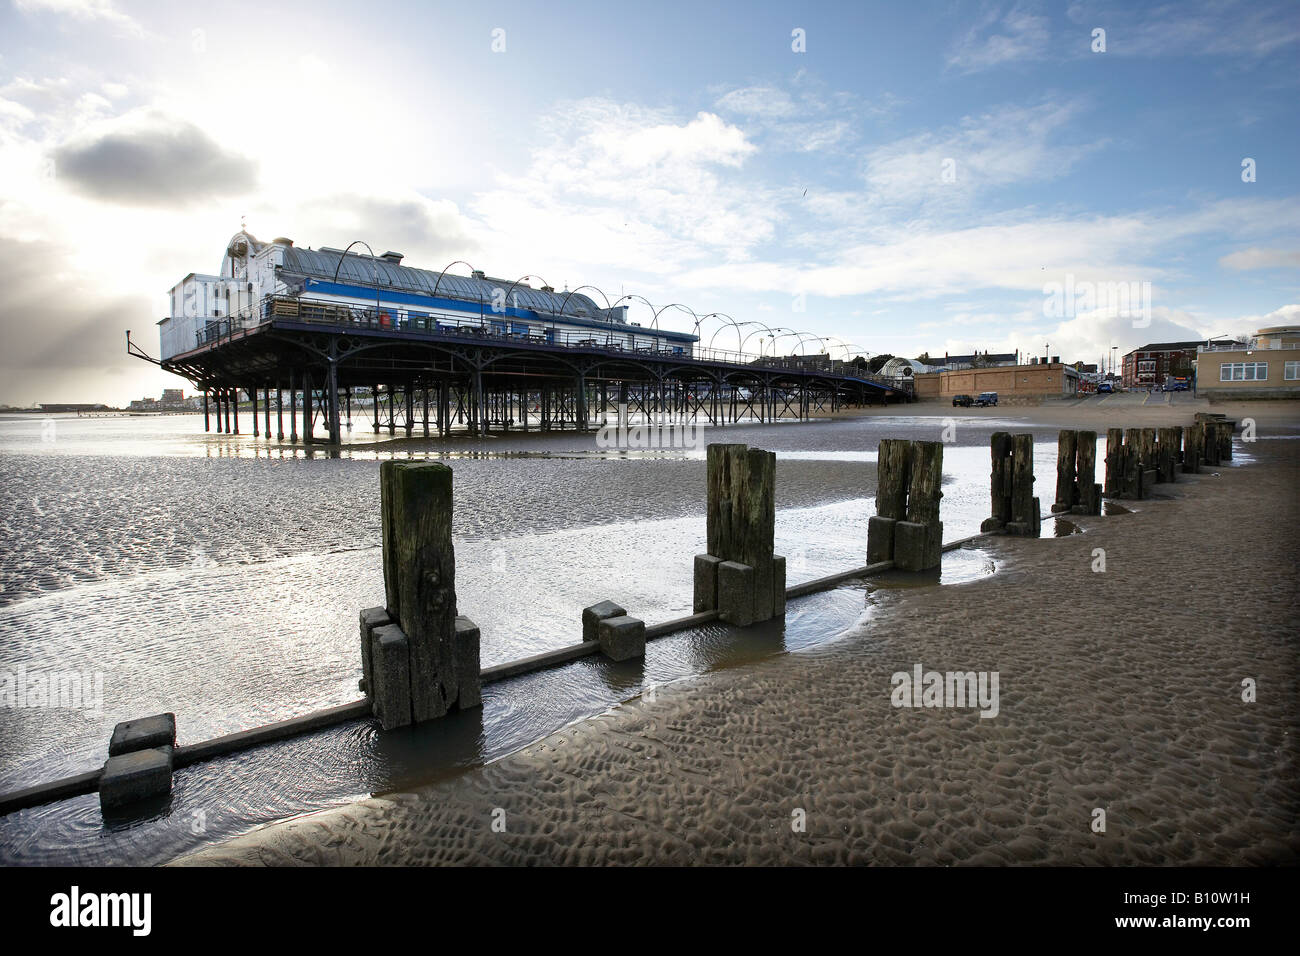 The pier and wooden groynes Cleathorpes beach north Lincolnshire - Stock Image